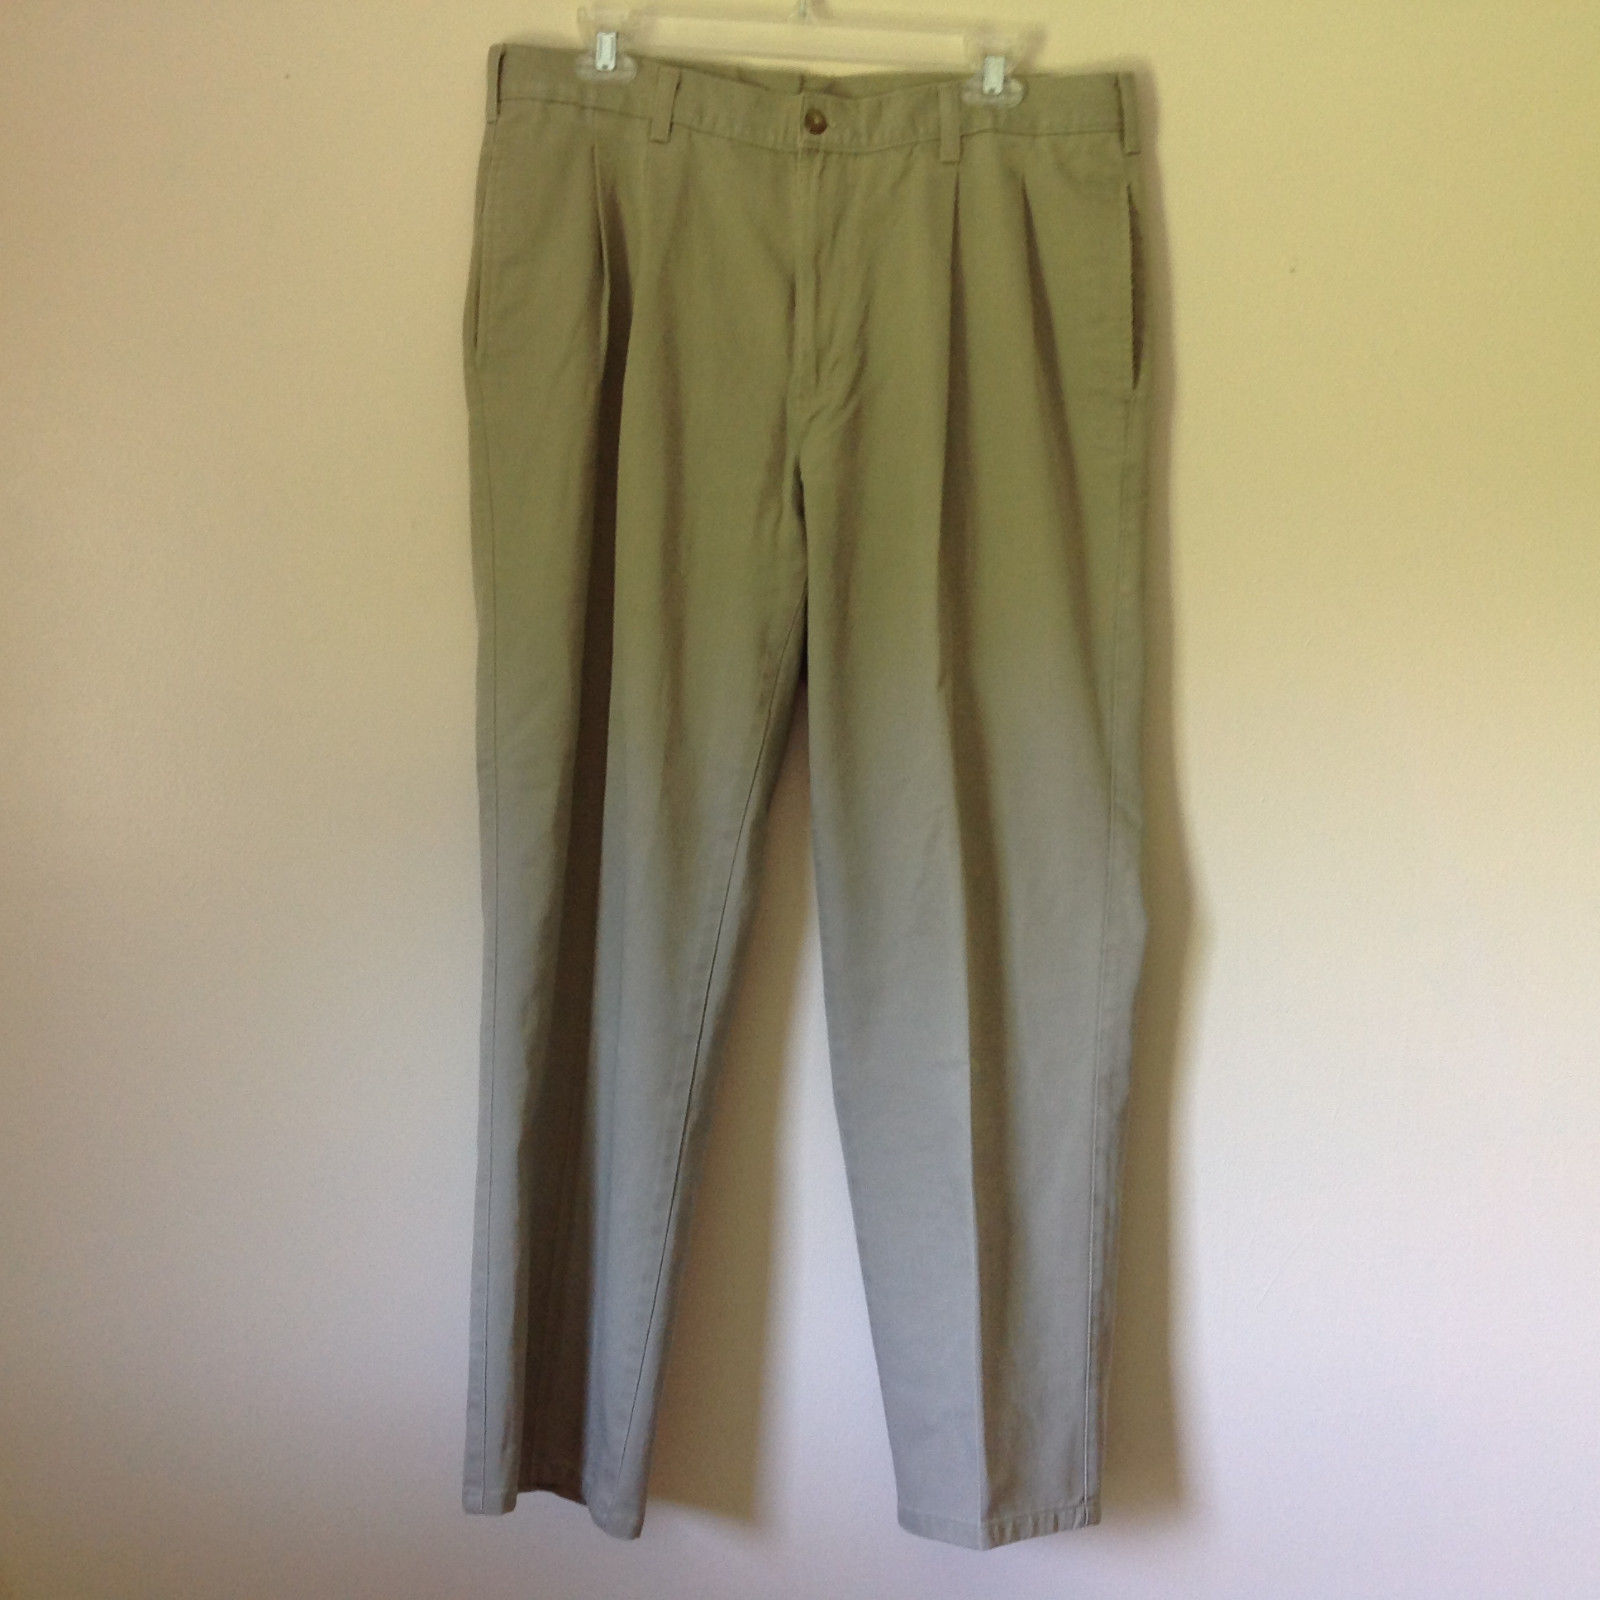 Claybrooke 100 Percent Cotton Khakis Long Pants Measurements Below